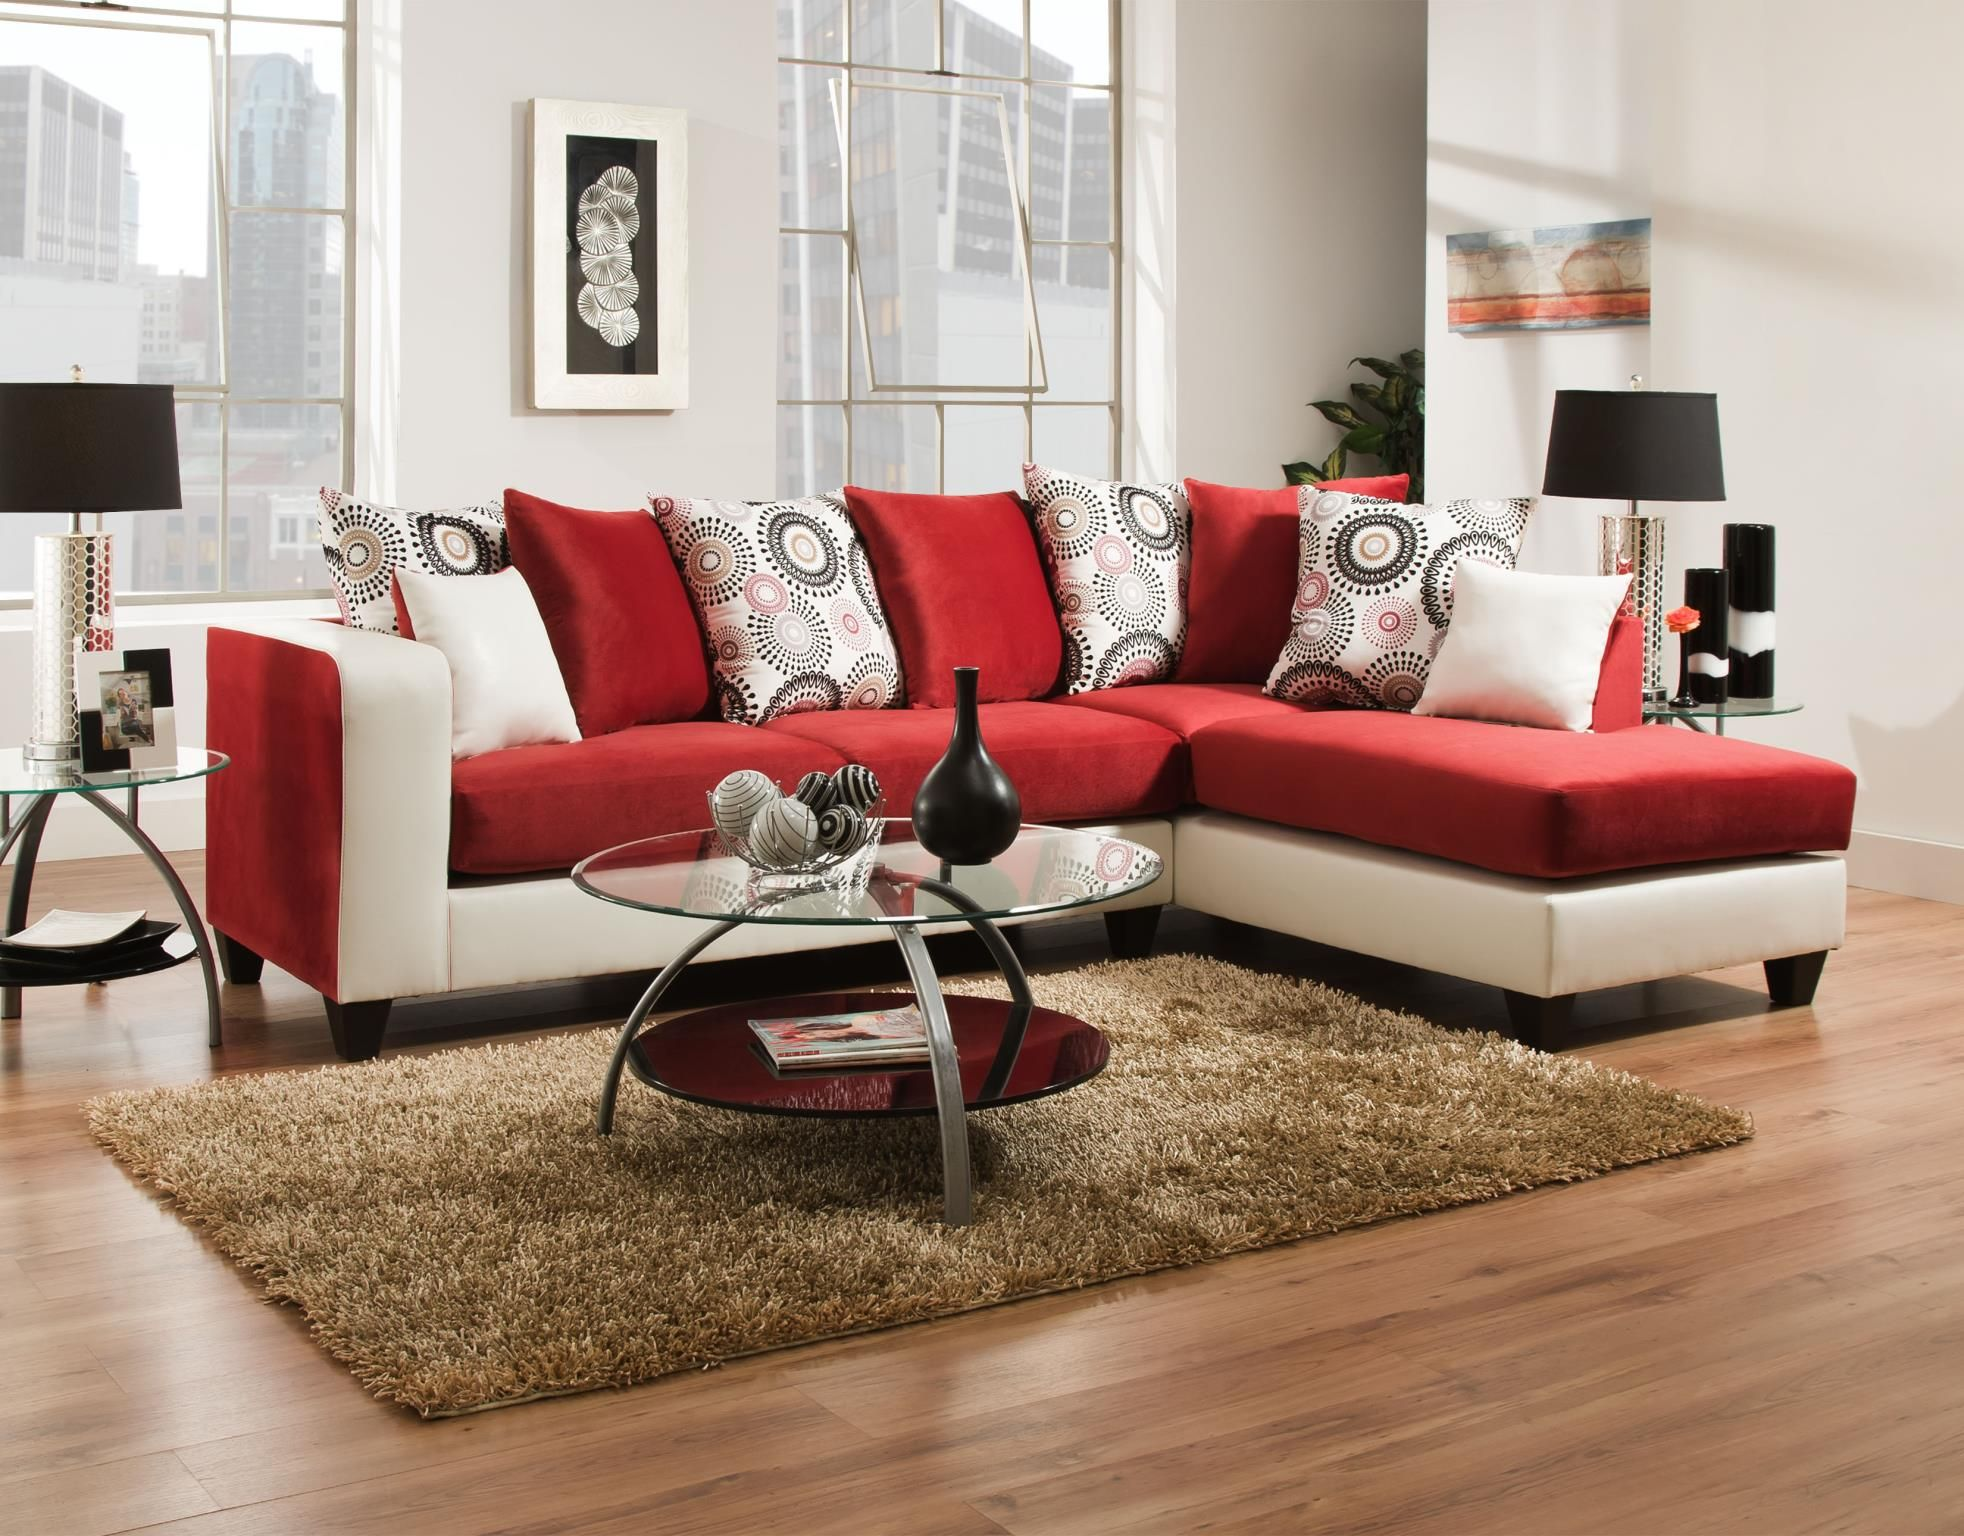 Delta Furniture 412403 Living Room Set  Living Room Furniture Glamorous Living Rooms Sets Design Inspiration